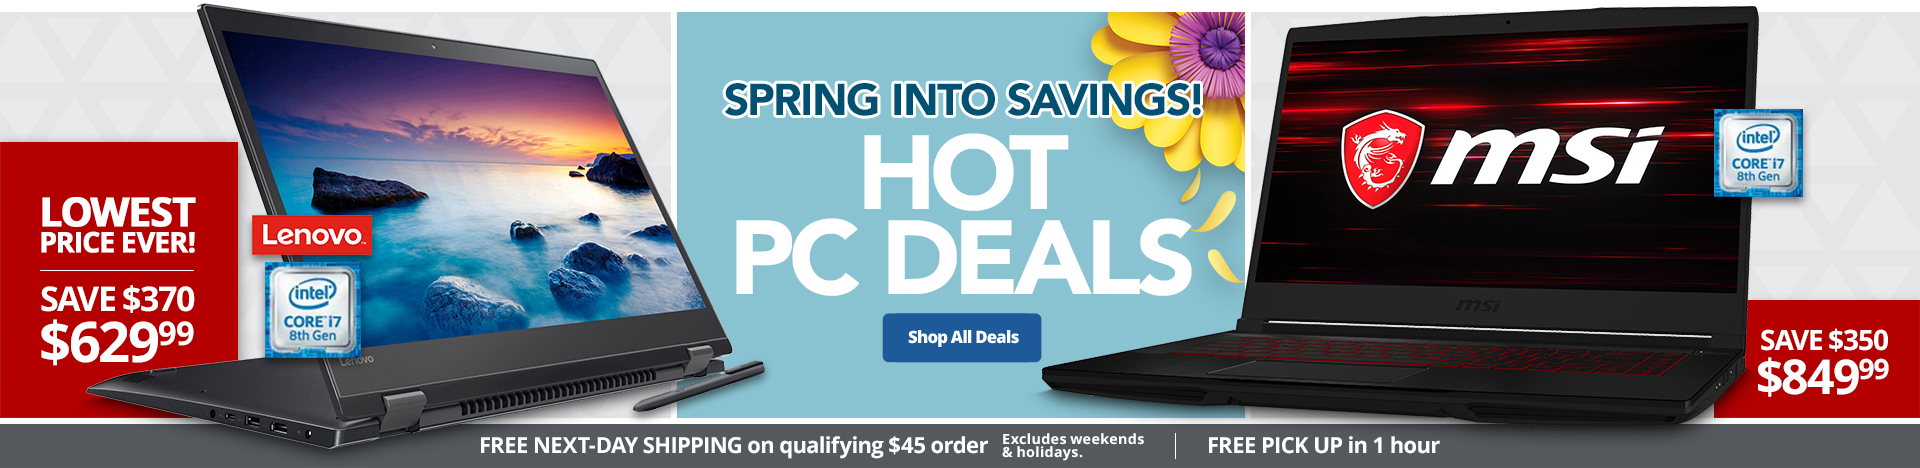 Spring Into Savings Hot PC Deals